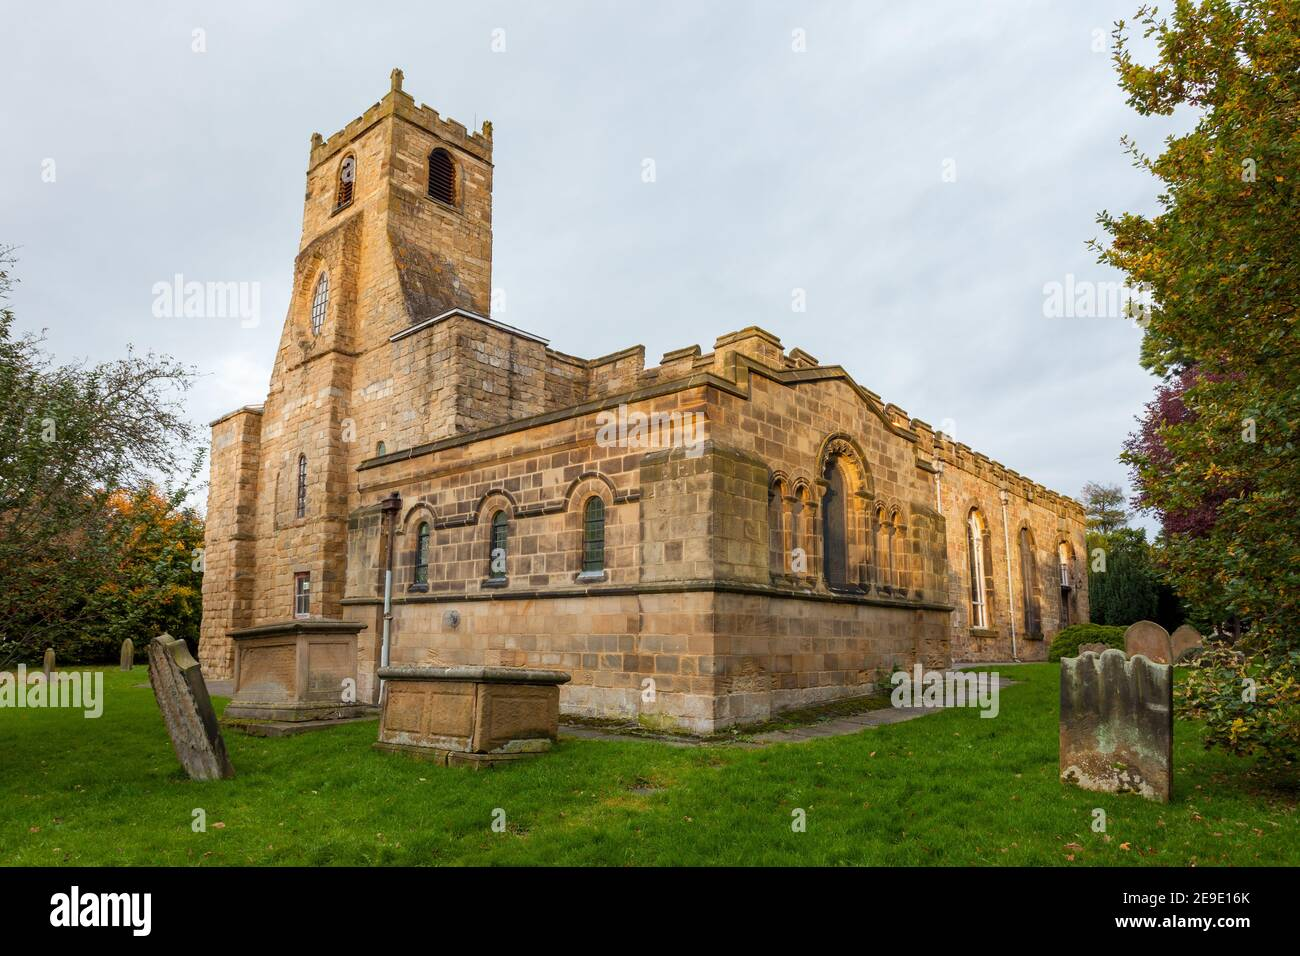 The historic parish church dedicated to St. Mary Magdalene in Yarm, North Yorkshire Stock Photo